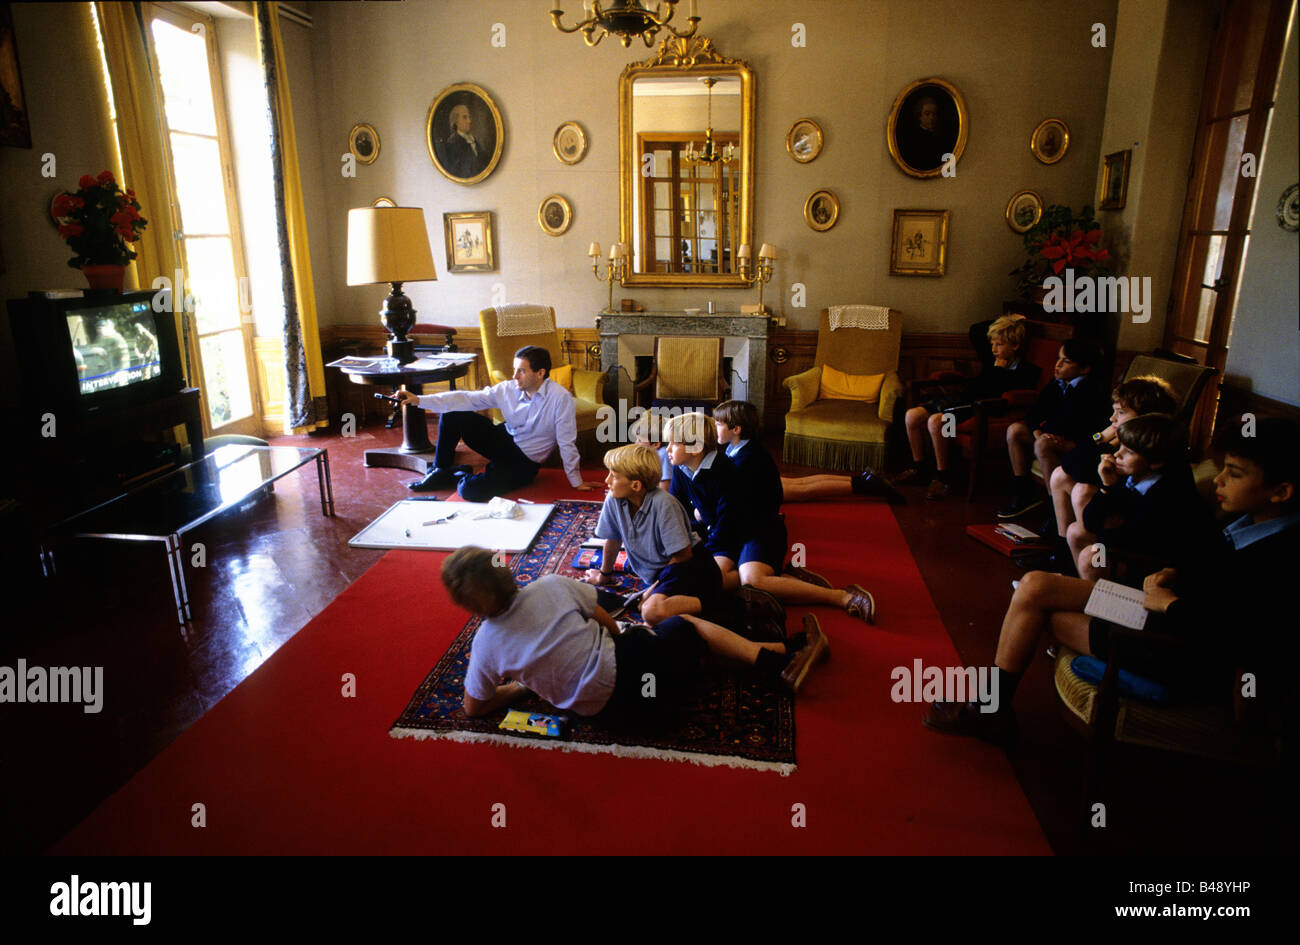 Boys watch a video with their teacher.The school has an annex at Saveterre Chateau near Toulouse, France. - Stock Image